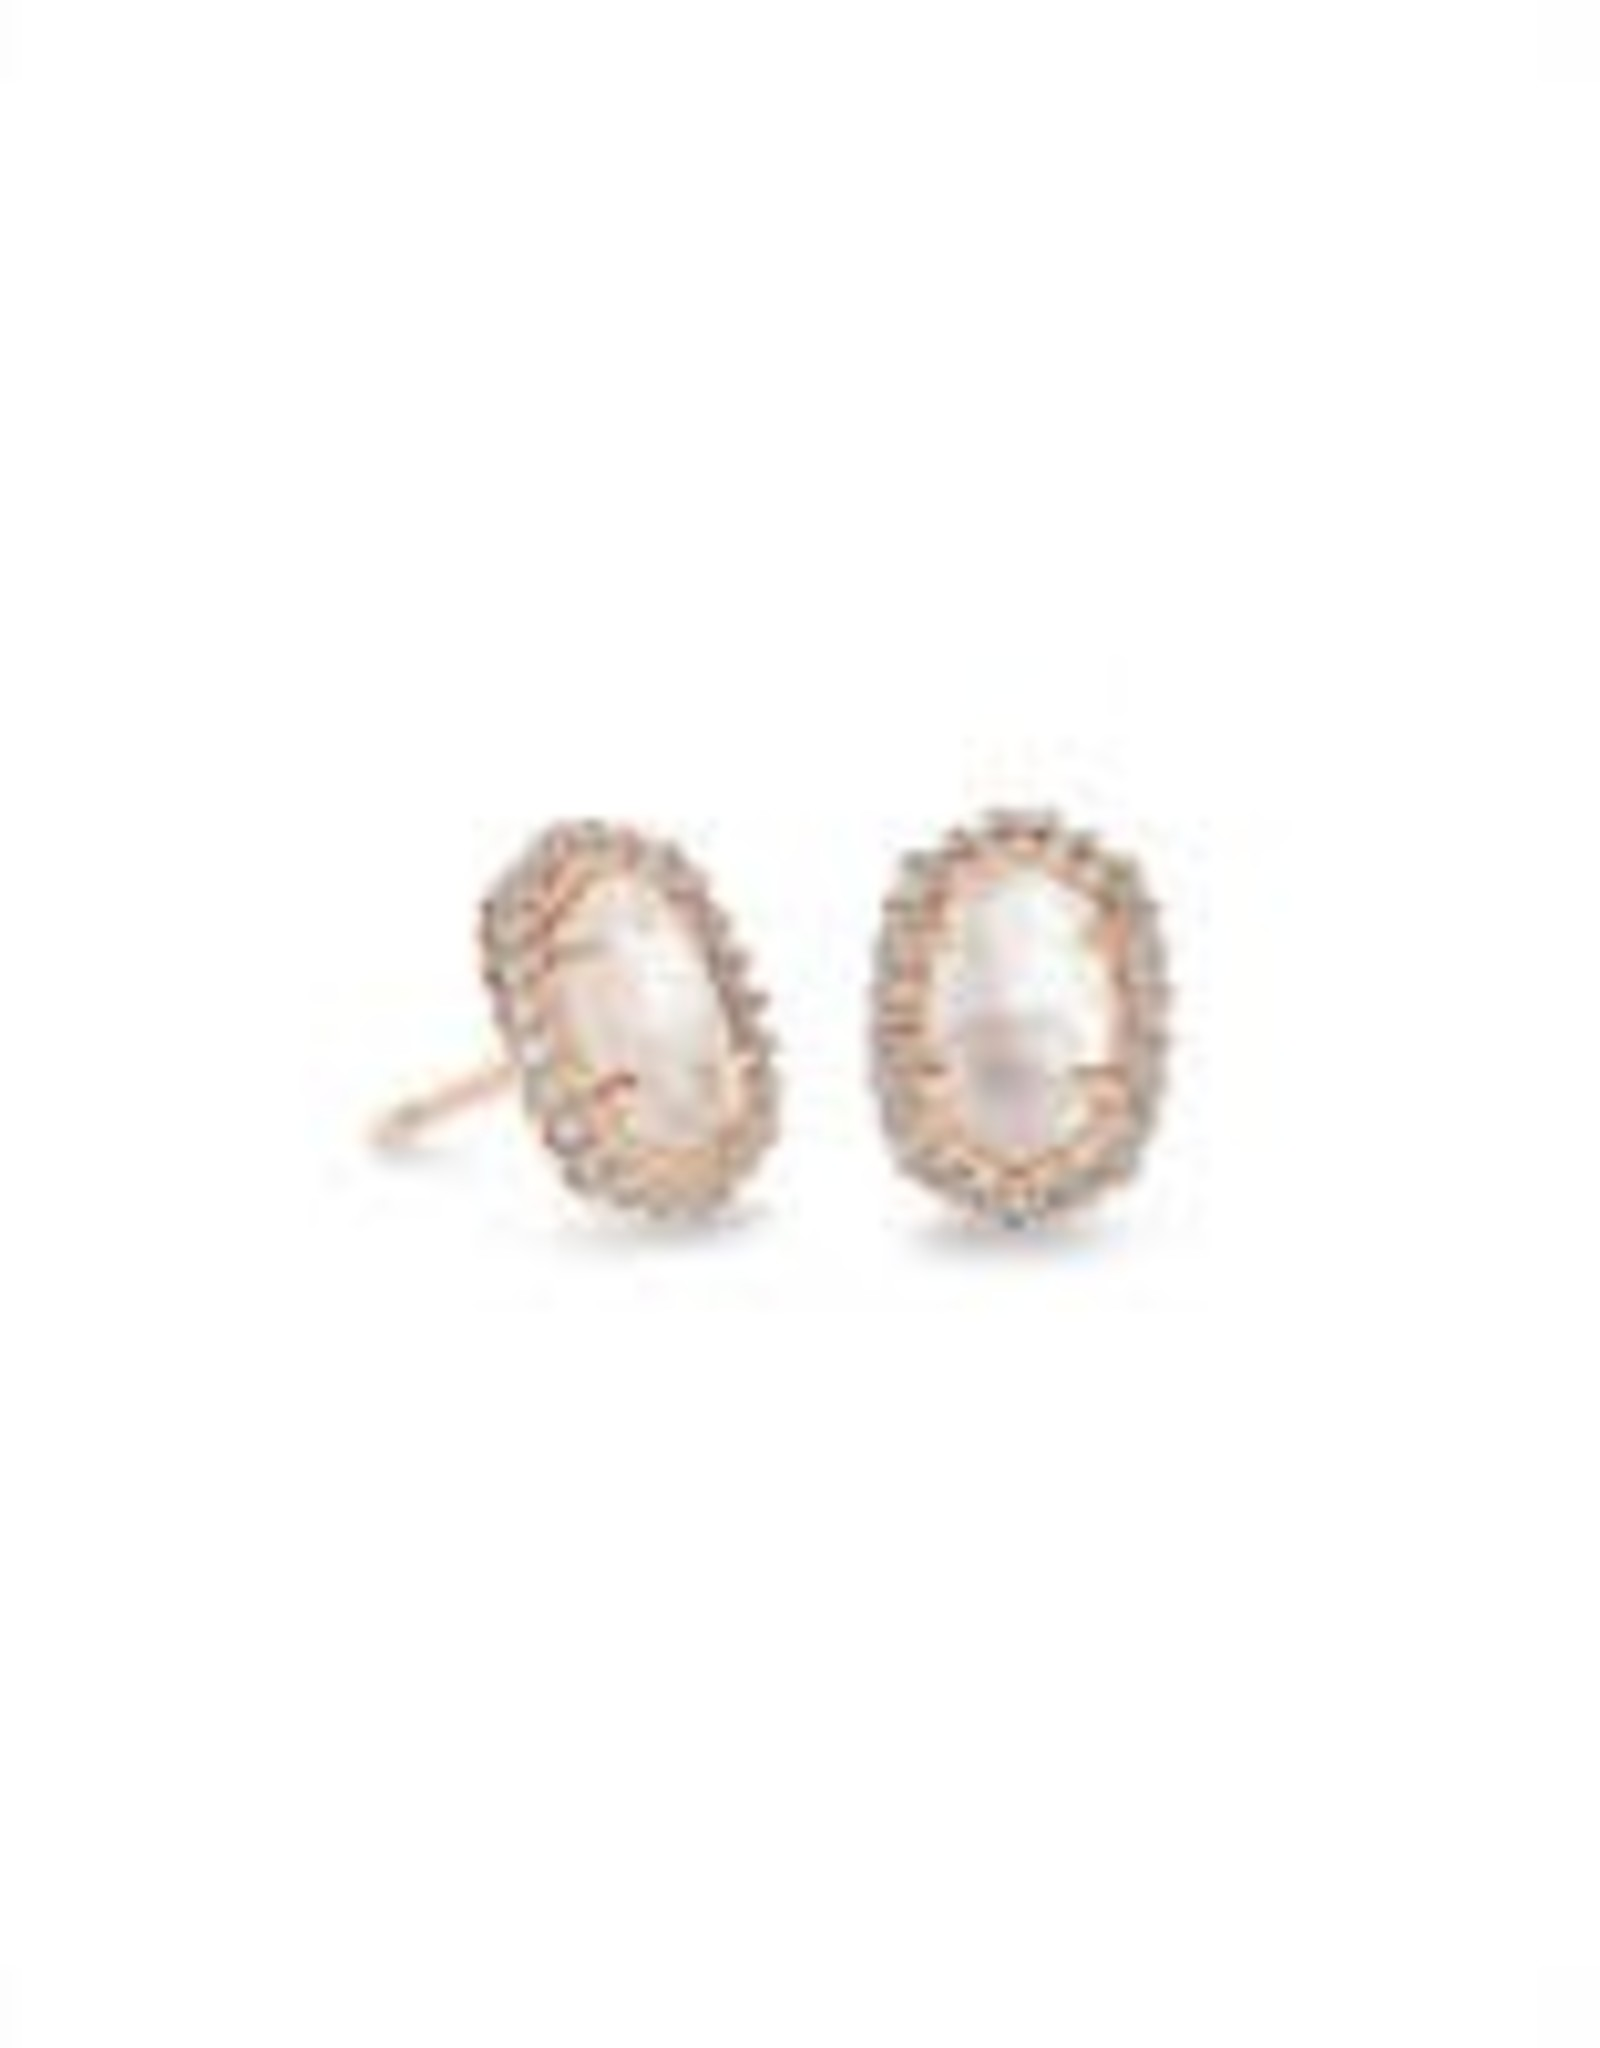 Kendra Scott Kendra Scott Rose Gold Cade Earring